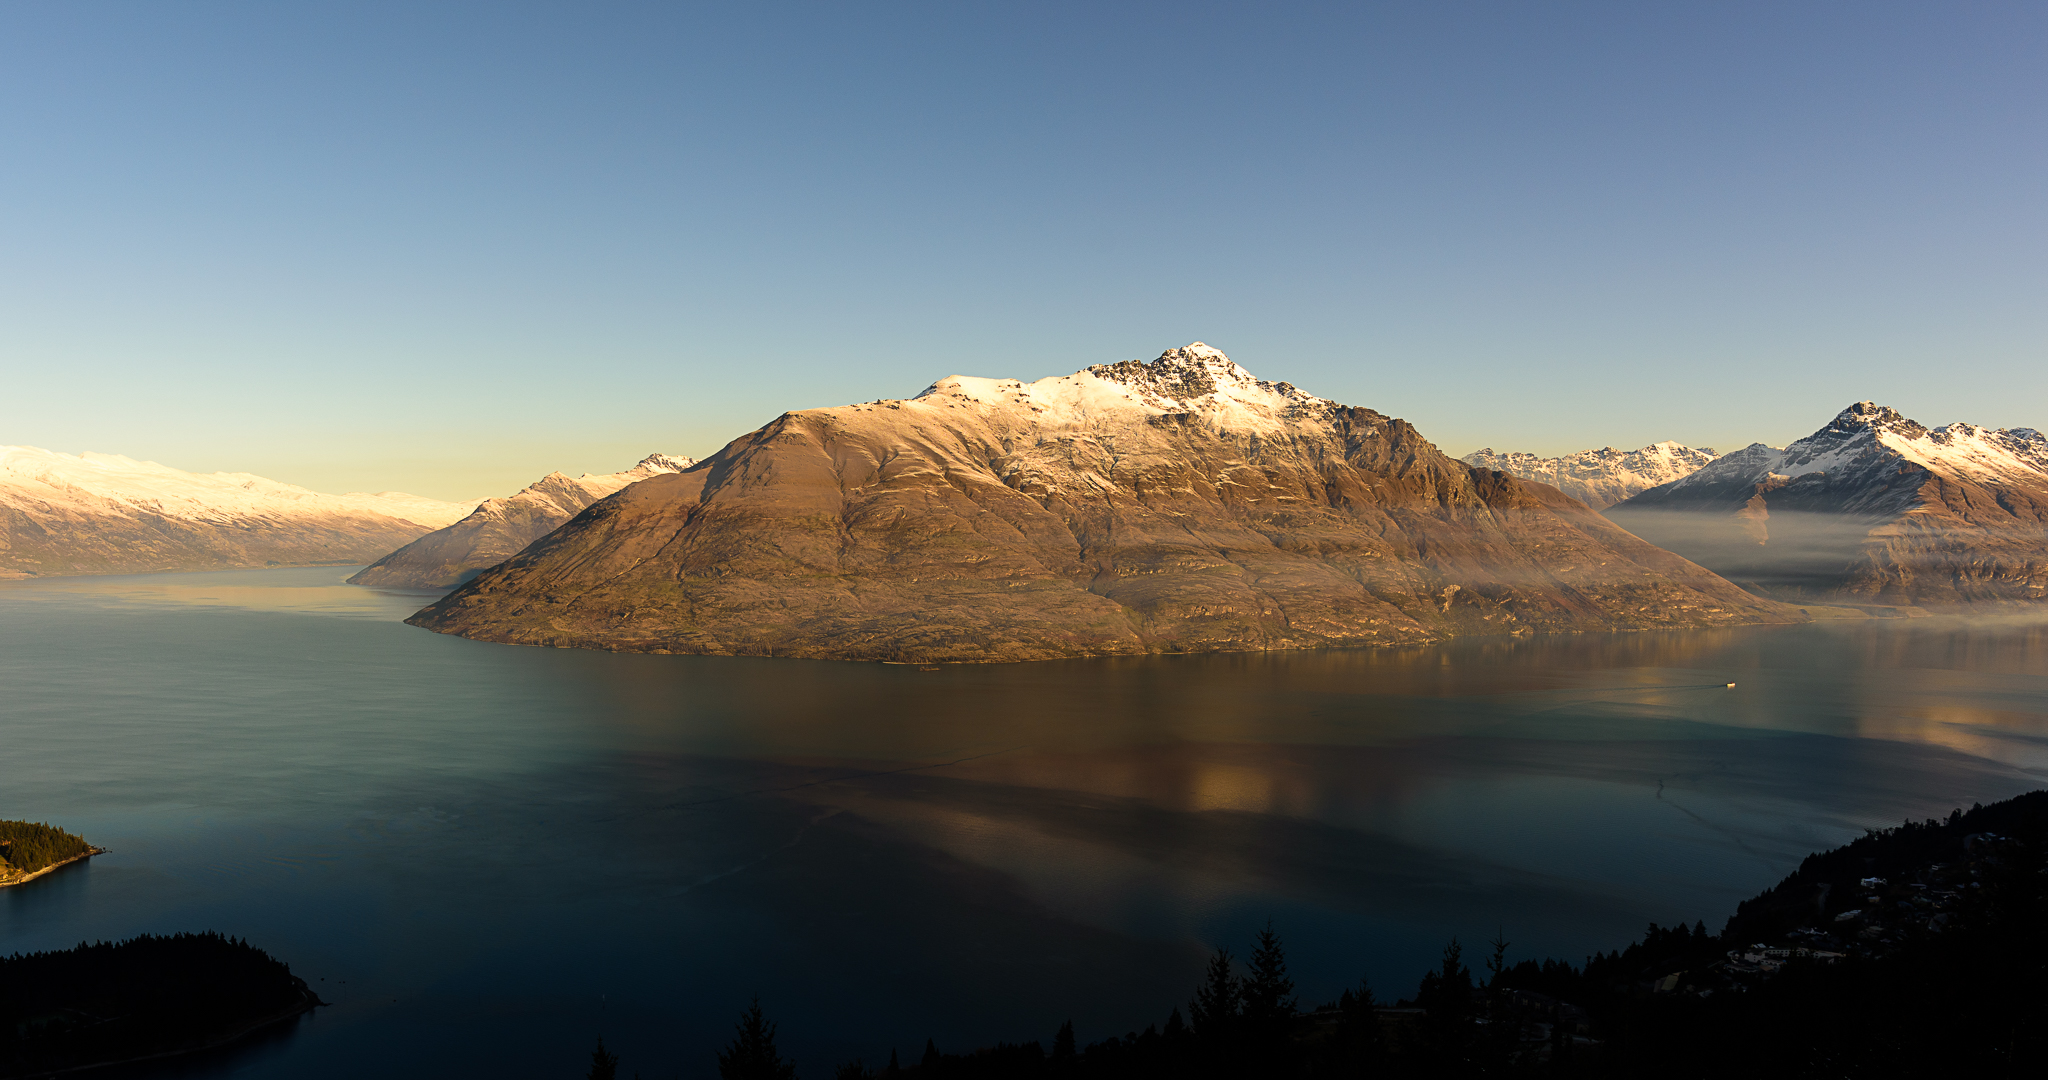 Cecil-Peak-near-Queenstown-New-Zealand-OC-OS-x1080-wallpaper-wpc9003399